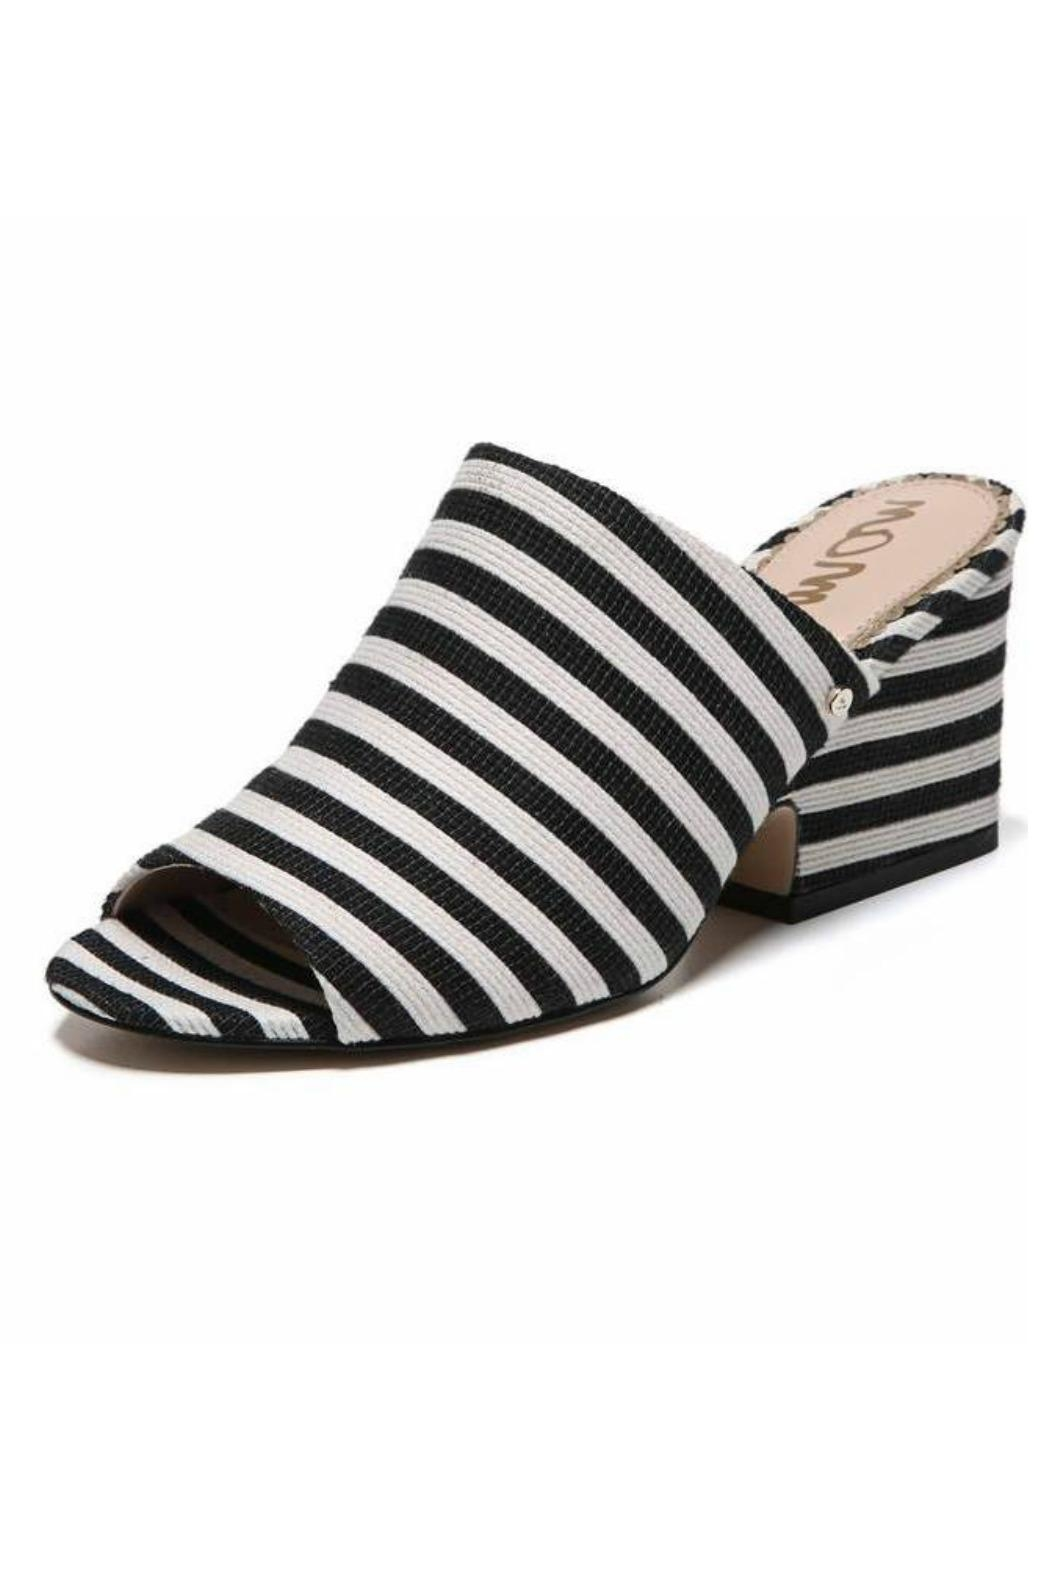 Sam Edelman Jill Striped Mule - Front Full Image